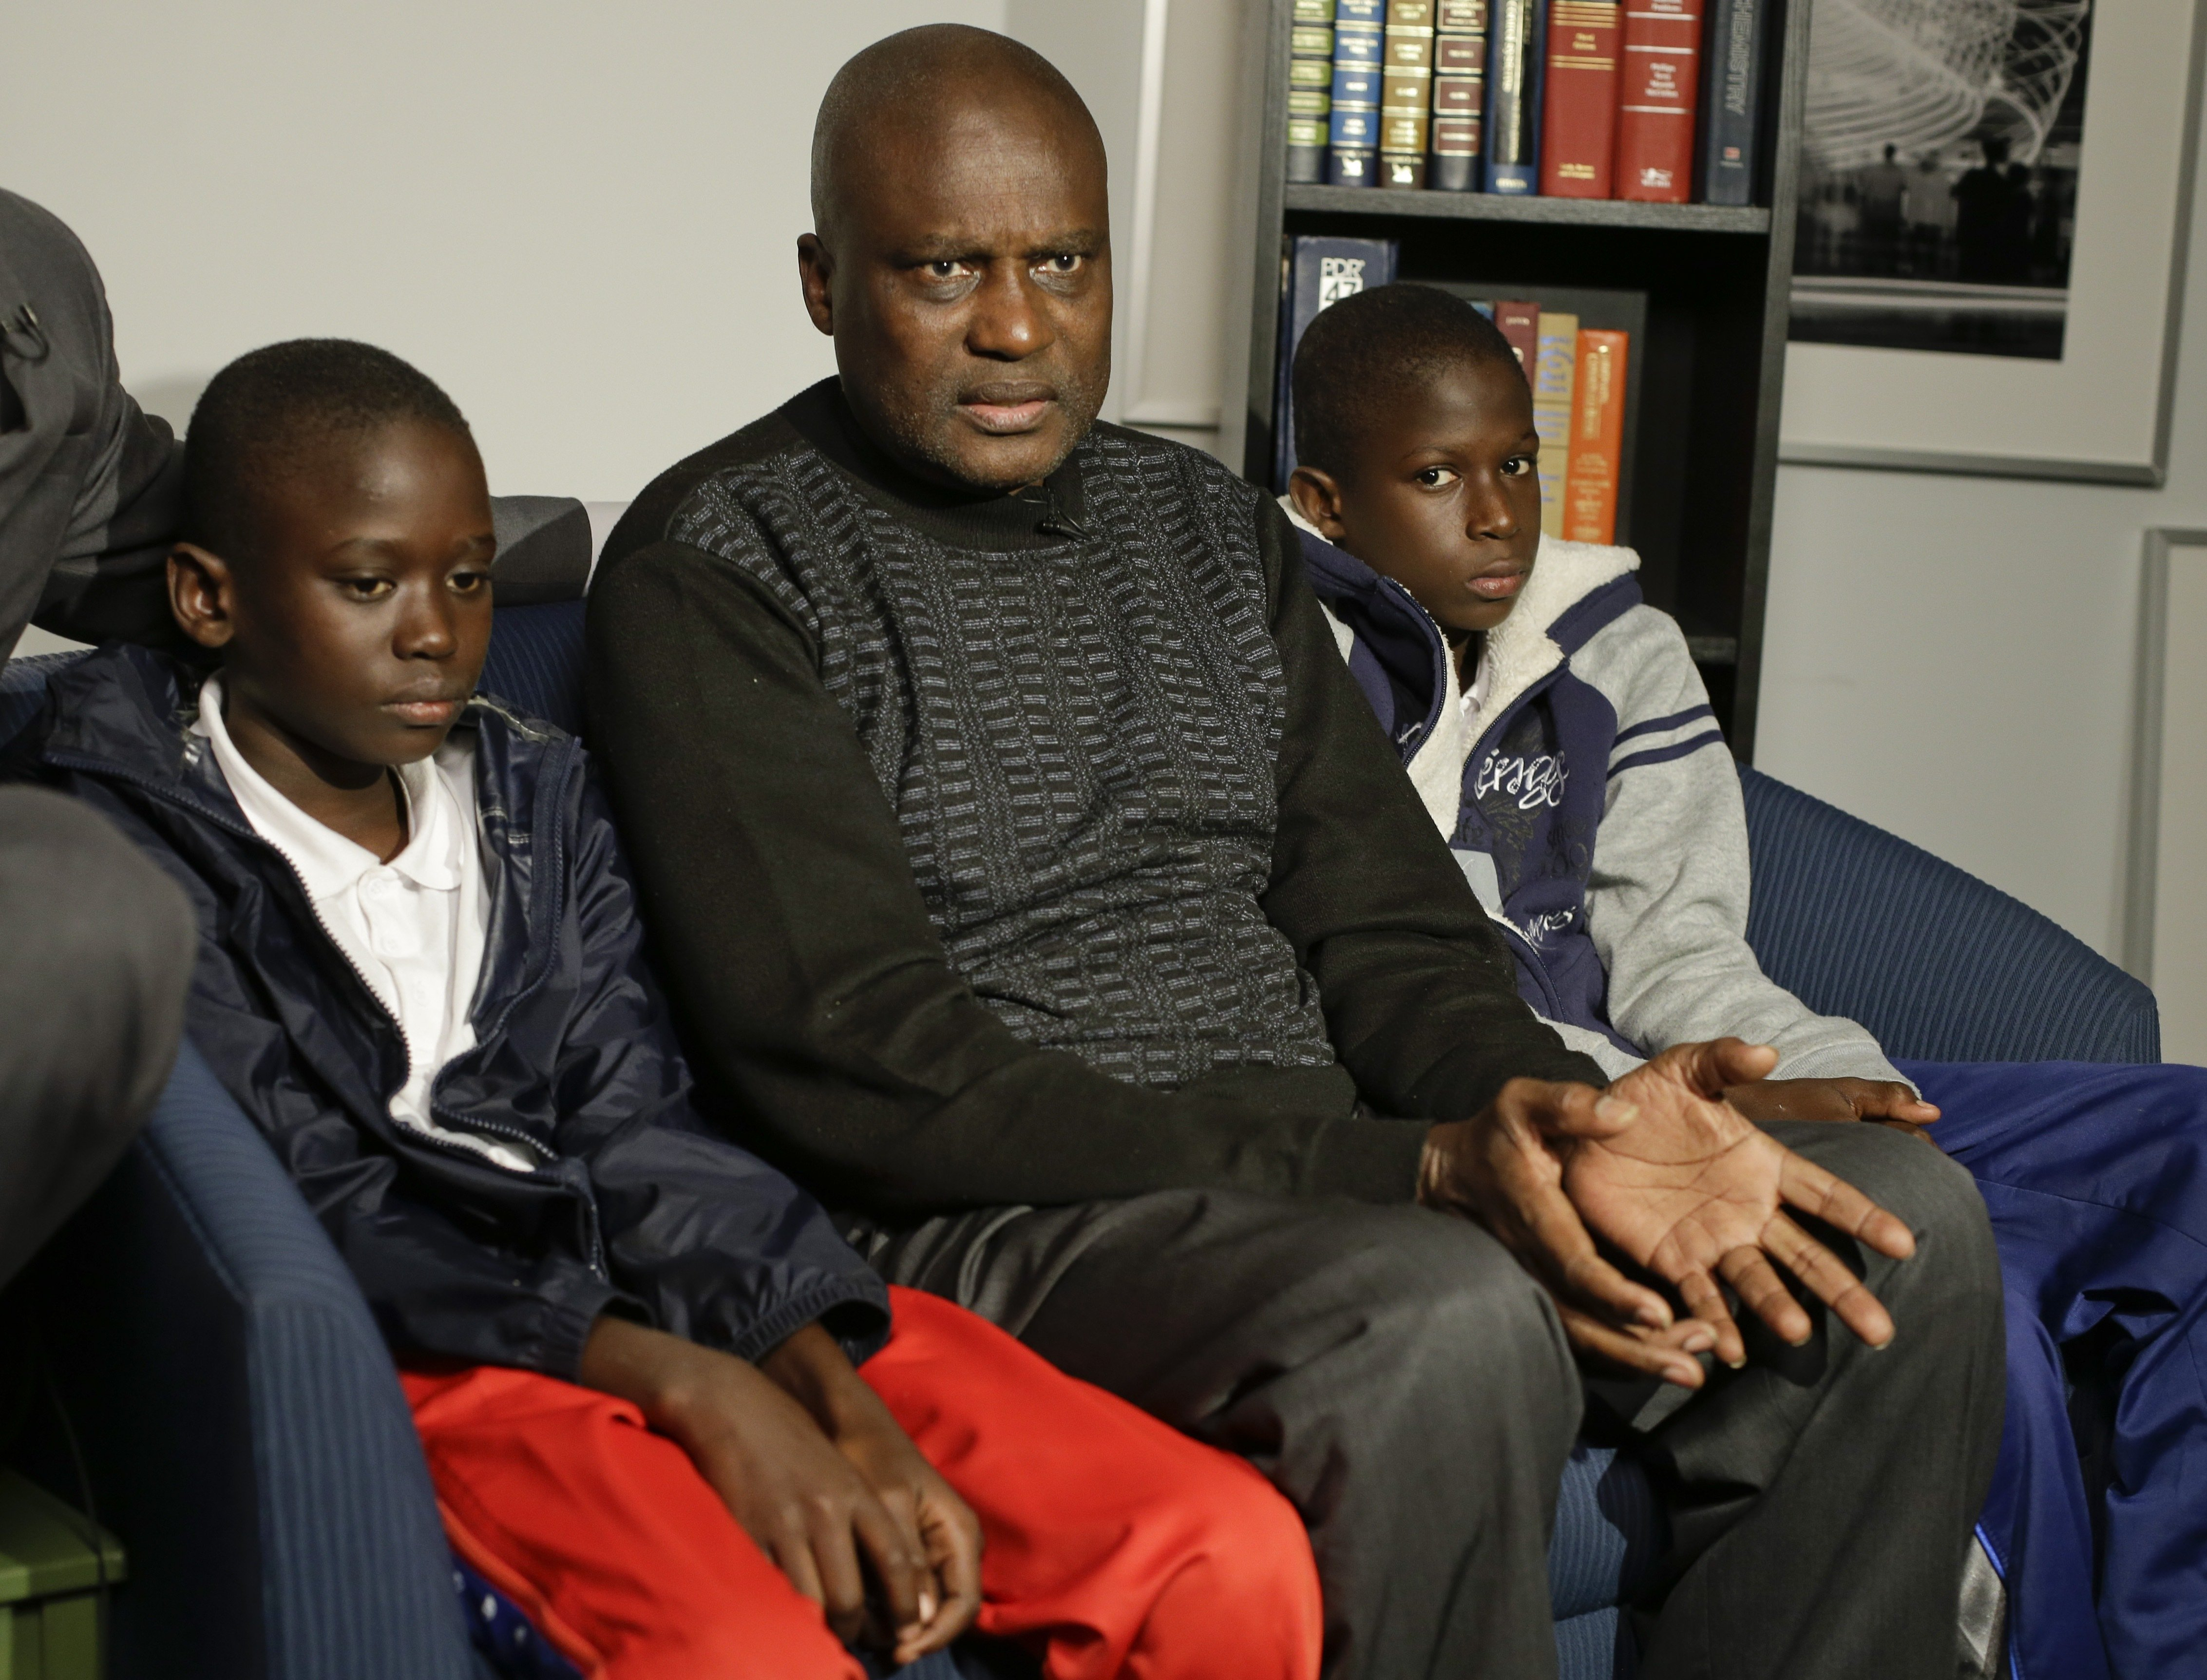 Amadou Drame, left, 11, and brother Pape Drame, right, 13, listen as their father Ousmane Drame responds to questions during a news interview on Oct. 28, 2014, in New York City